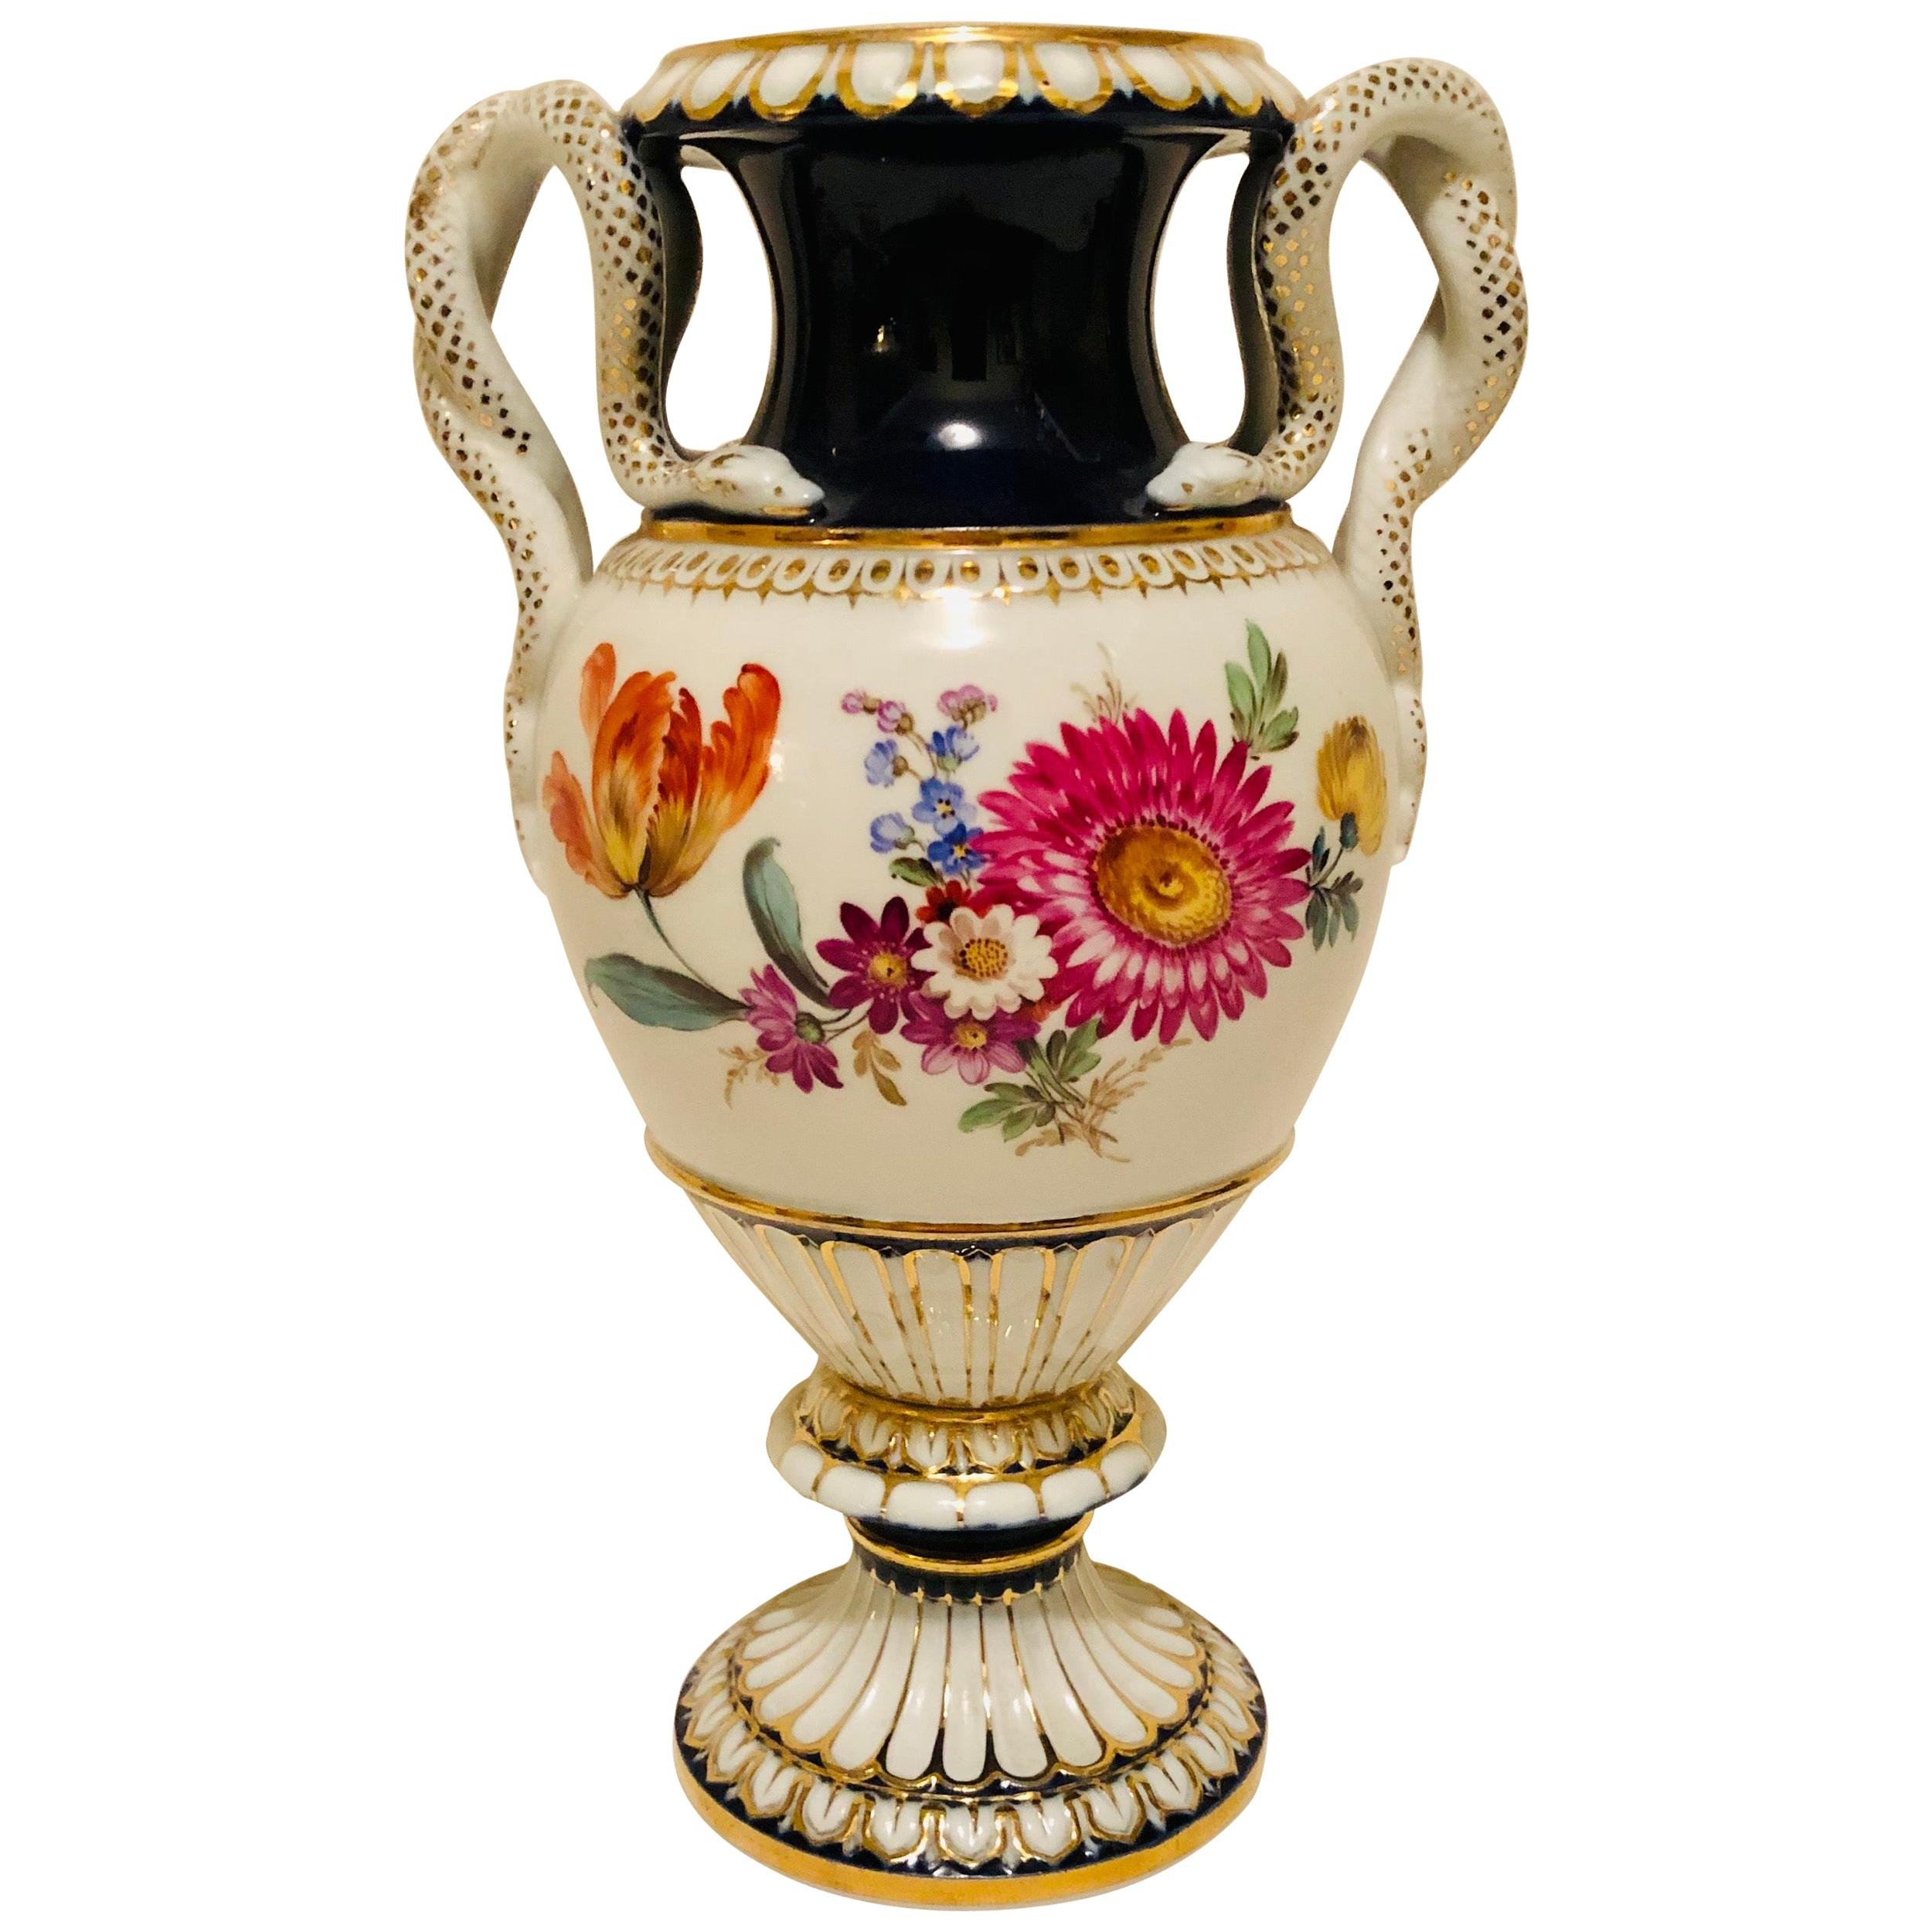 Meissen Vase with Different Flower Bouquets on Either Side and Snake Handles